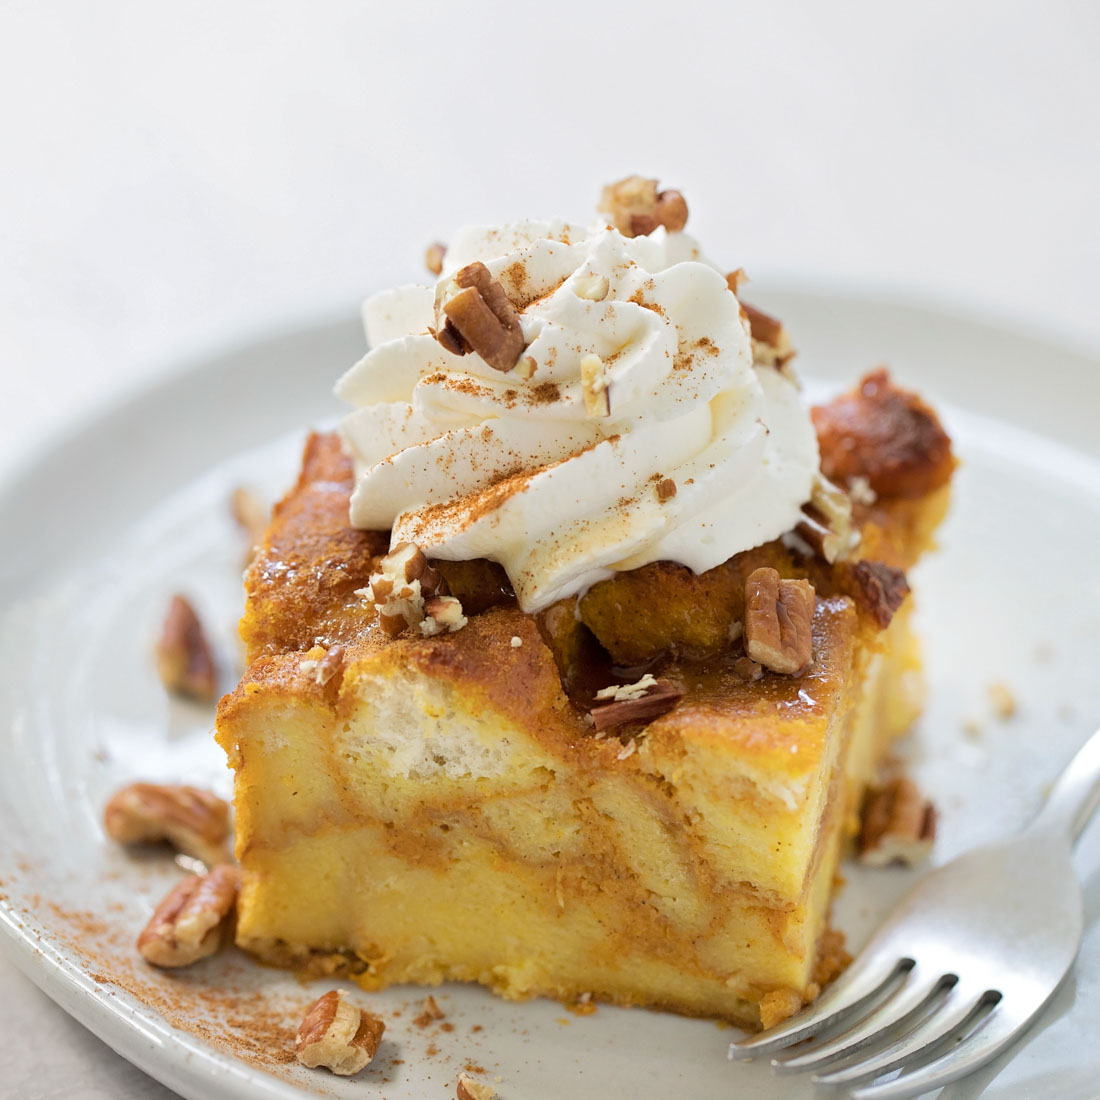 Pumpkin bread pudding slice with whipped cream and pecans on plate